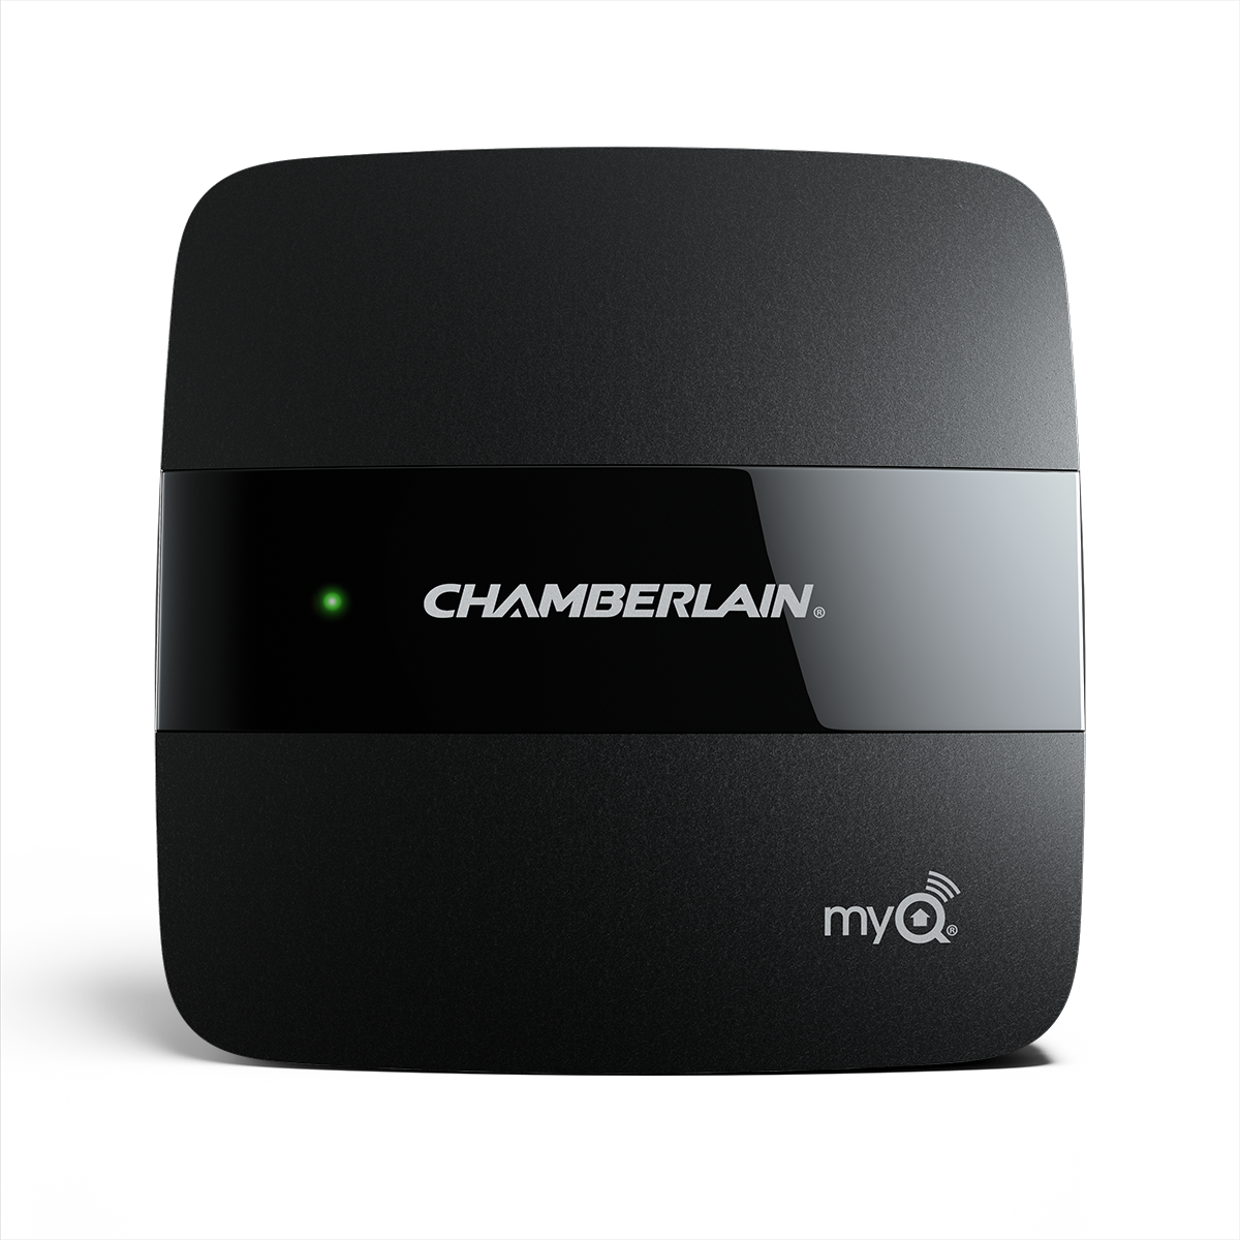 The Chamberlain Group, Inc. manufactures and markets some